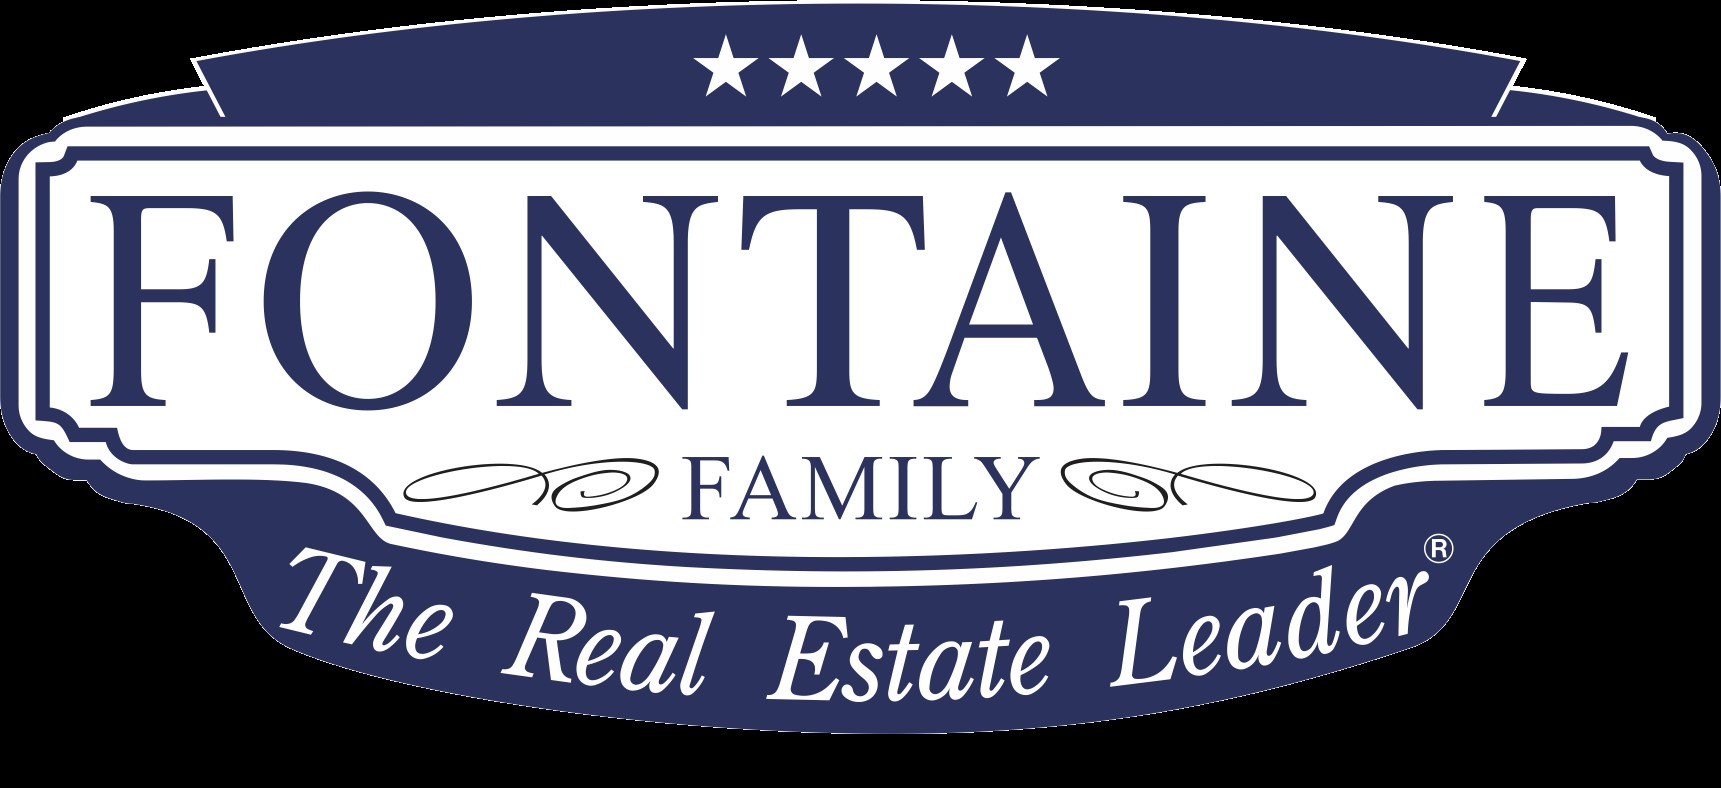 Fontaine Family-The Real Estate Leader logo